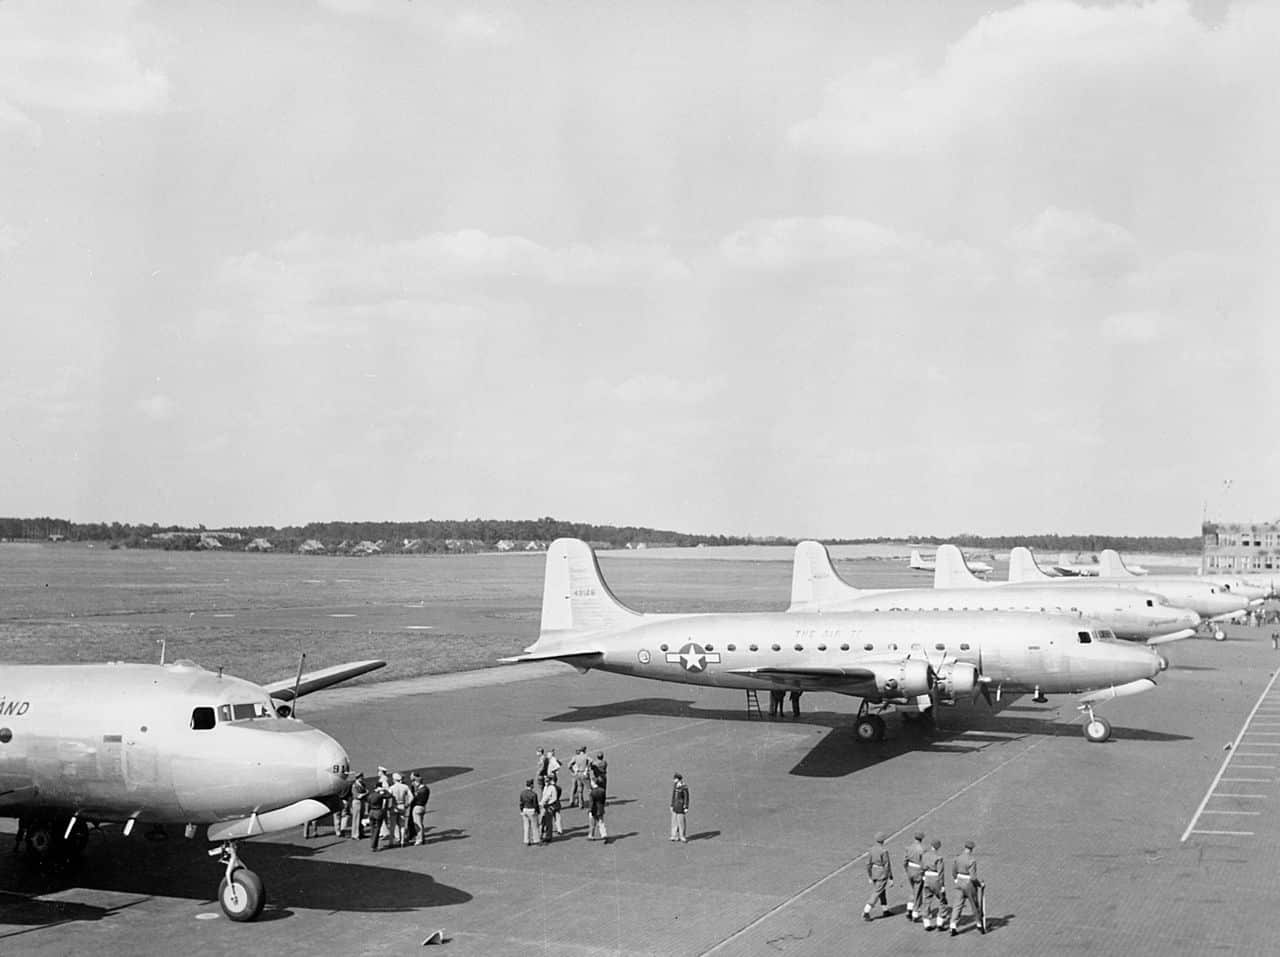 The Potsdam Conference - July 25th 1945 - US President Harry Truman's plane waits at Berlin Gatow airport